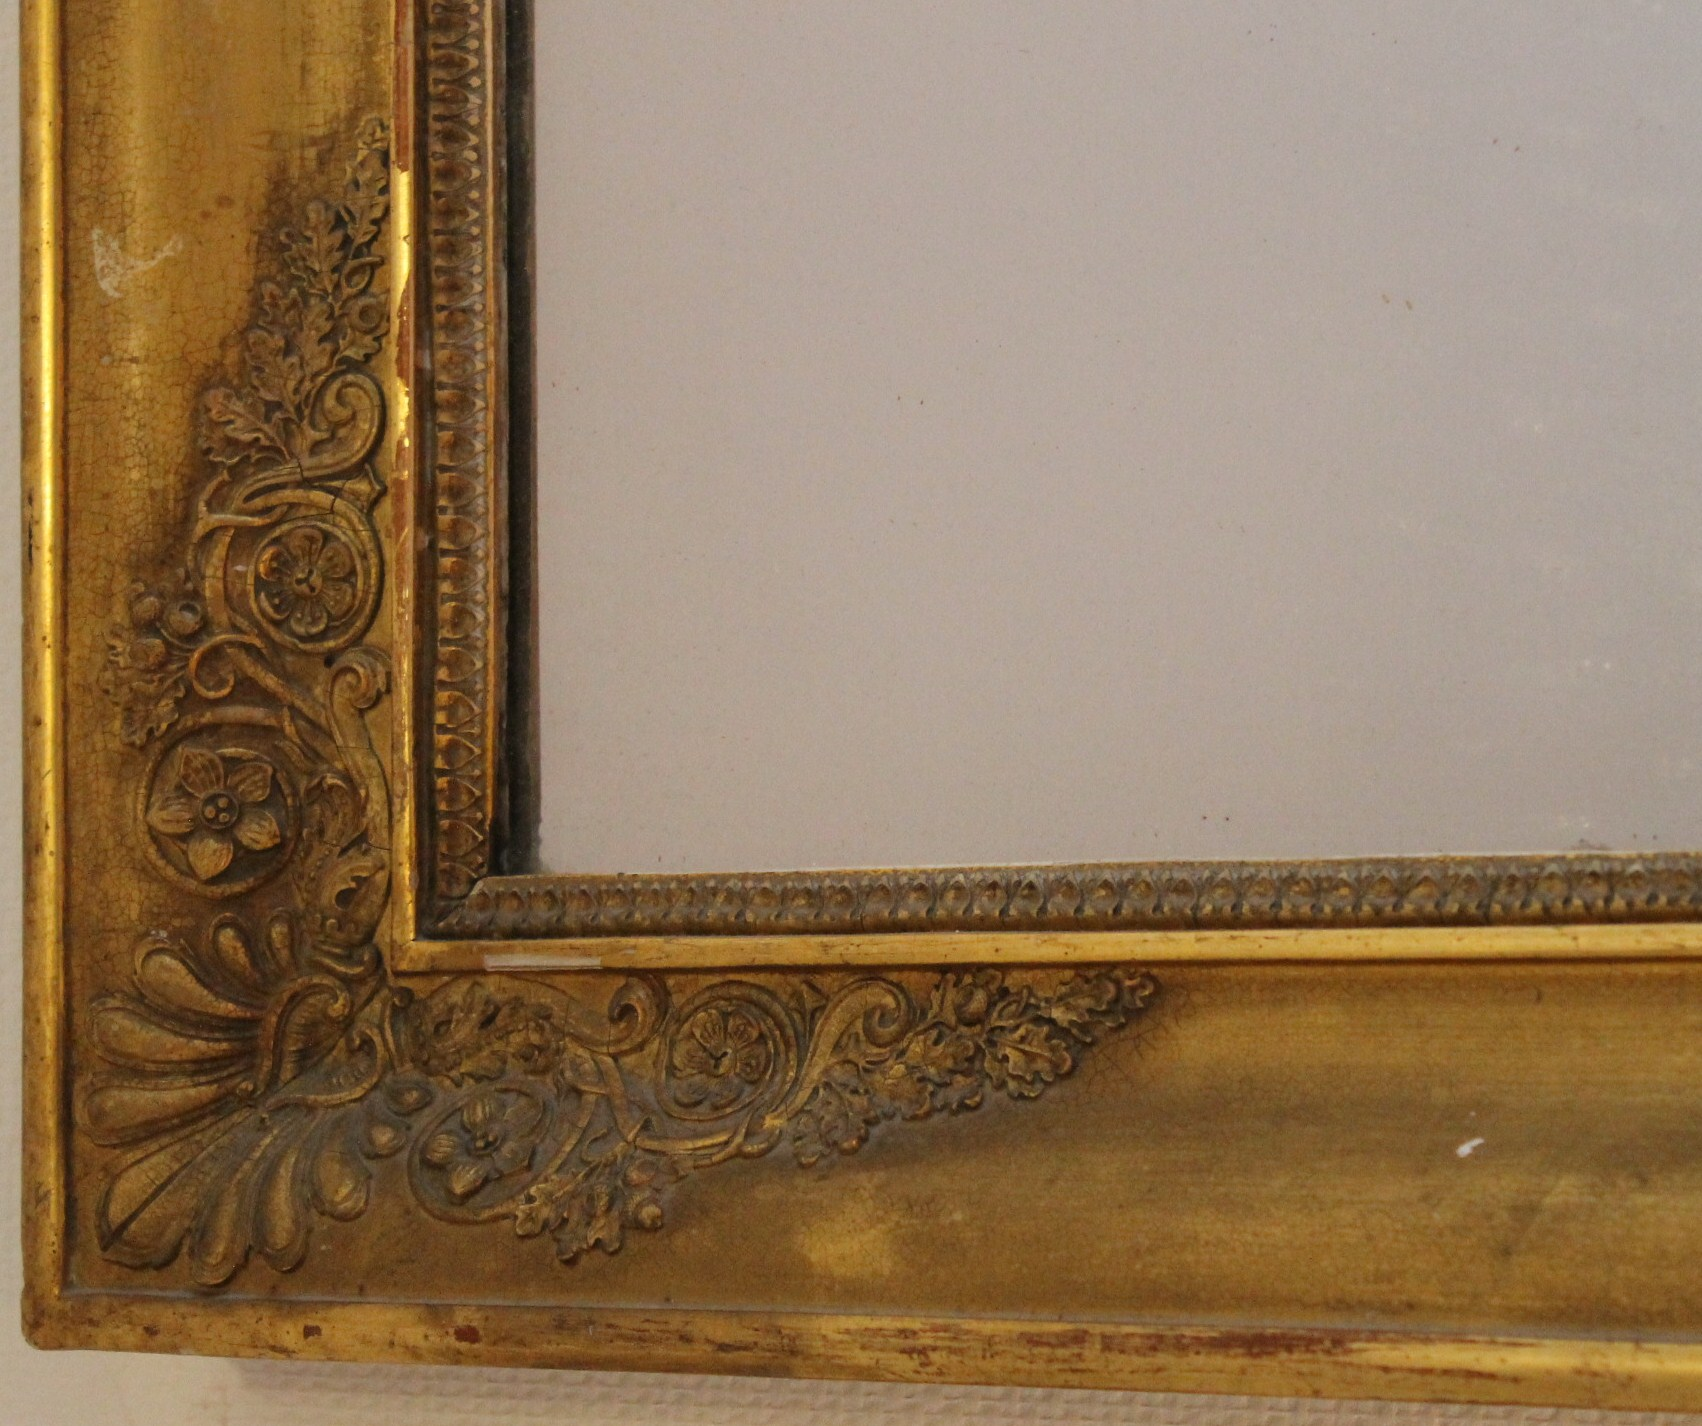 Grand miroir d poque restauration 140 cm x 86 cm for Recherche grand miroir